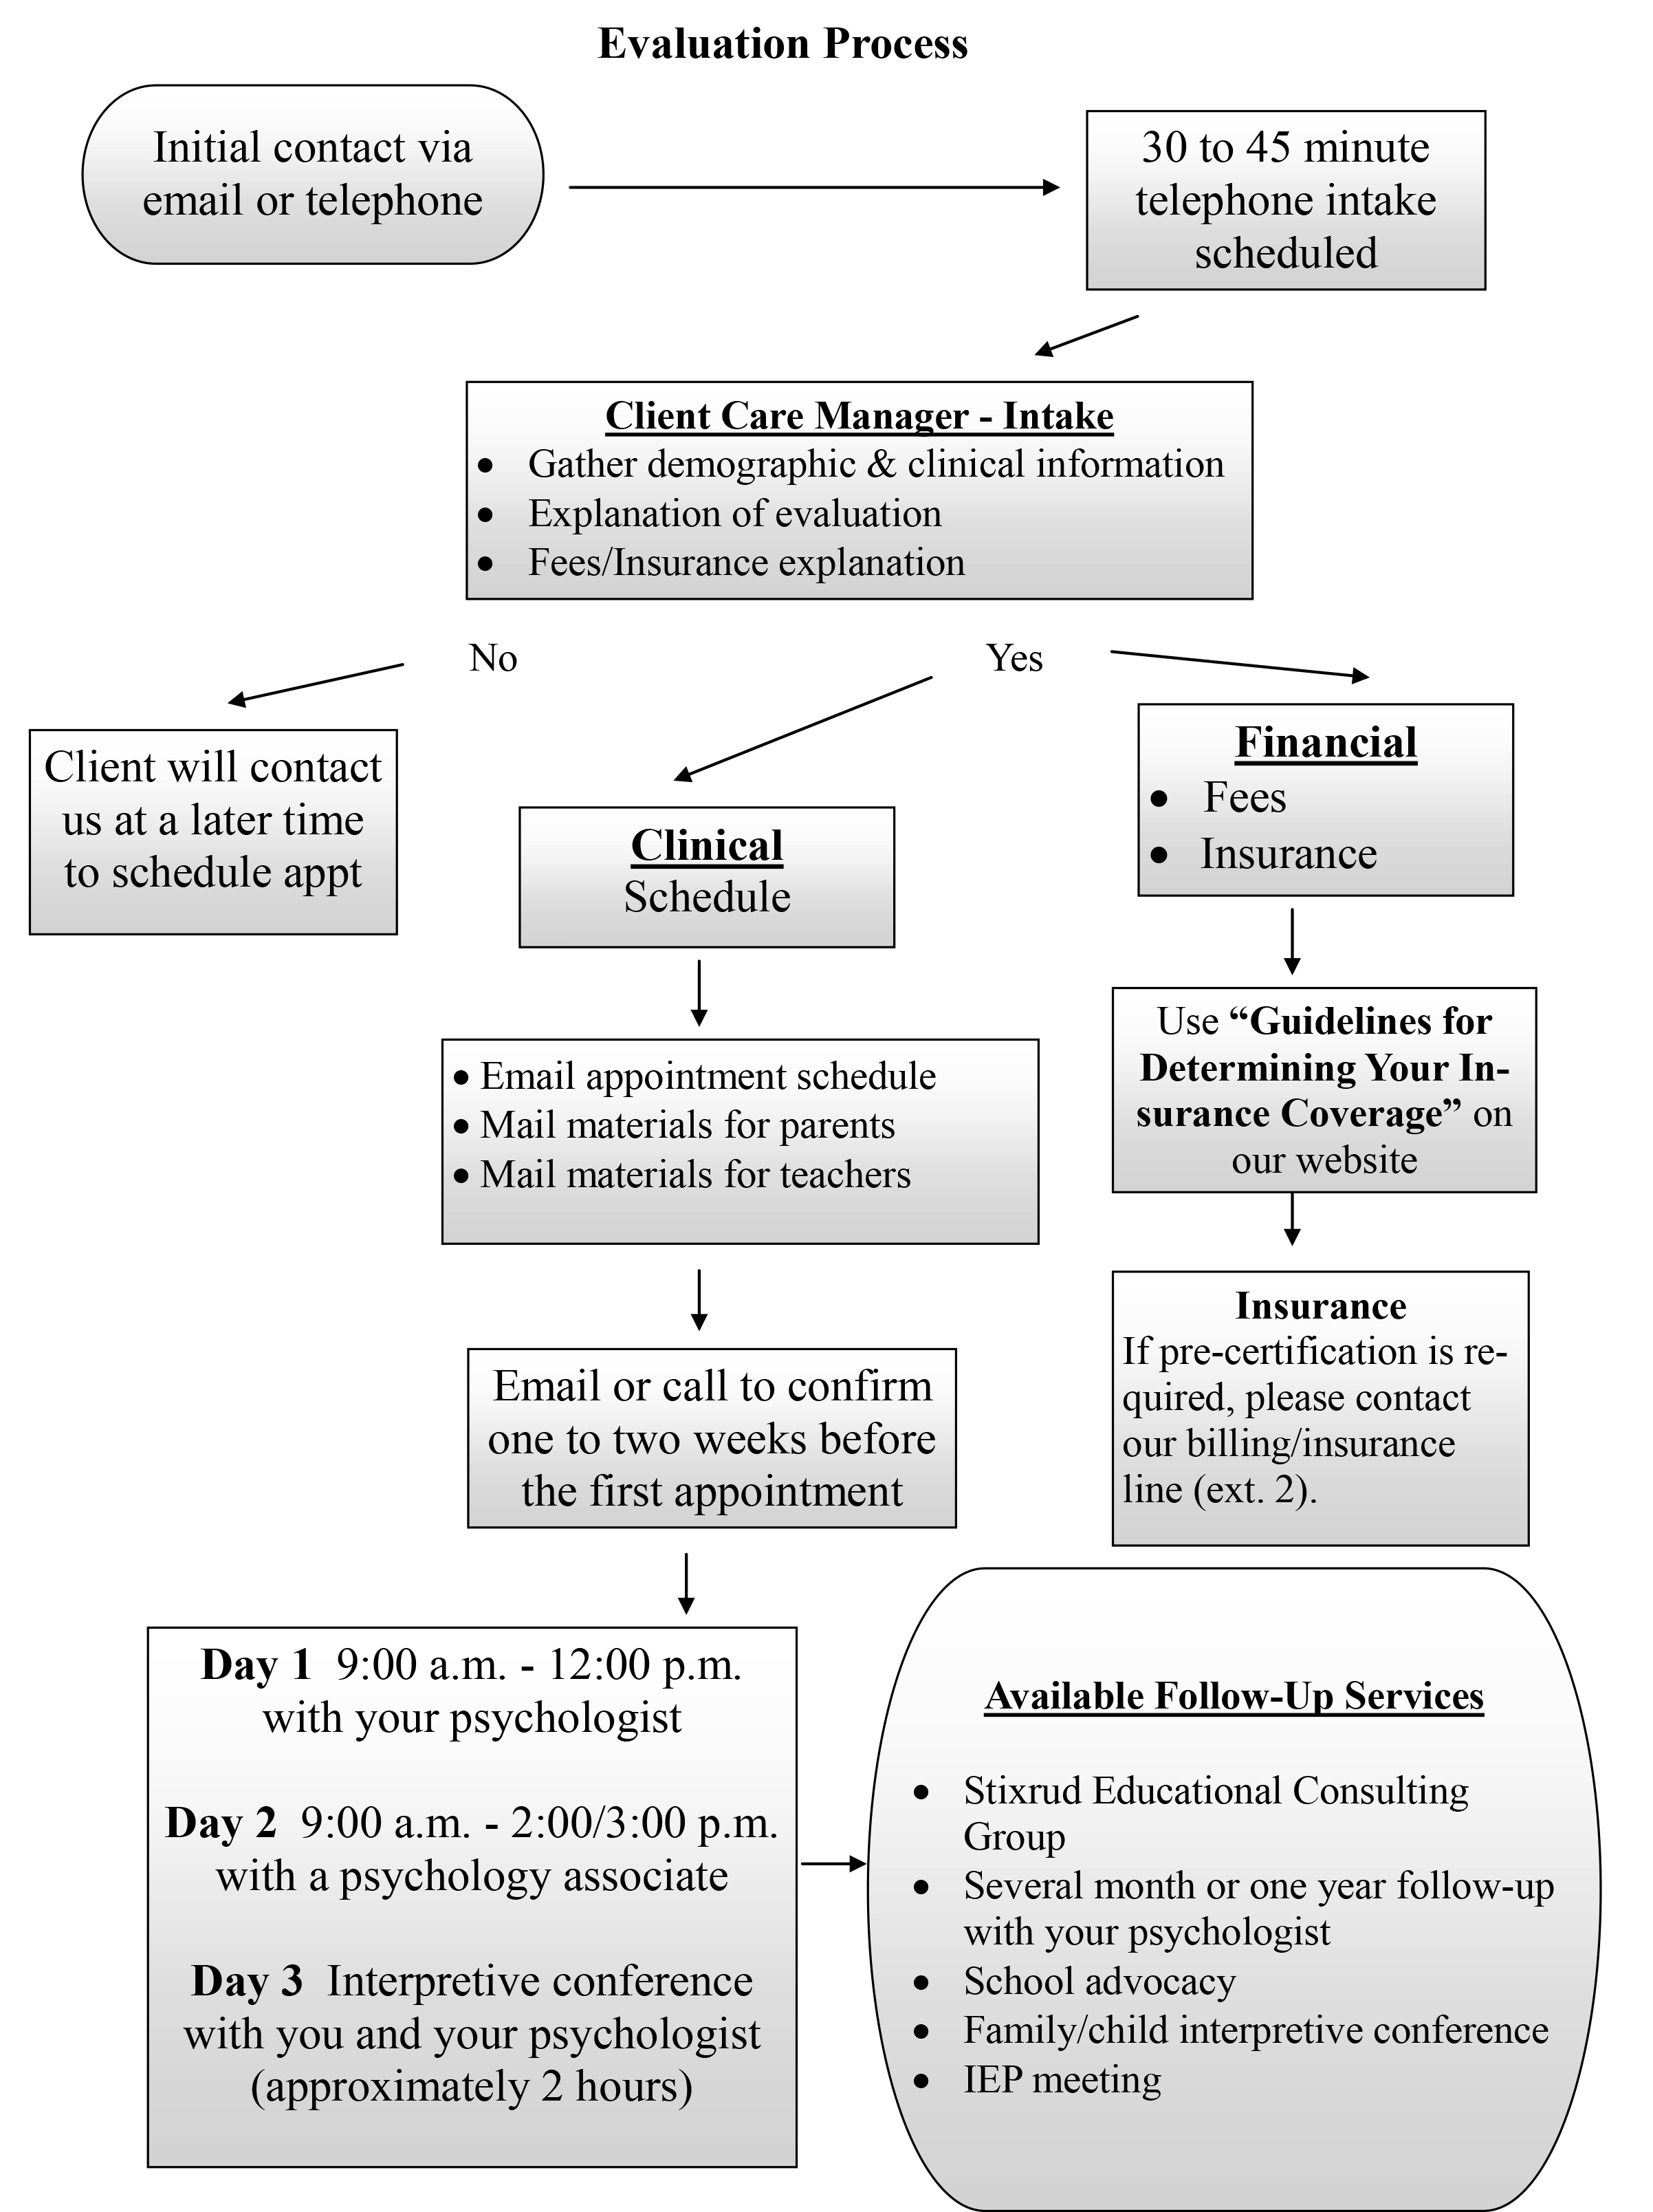 The Evaluation Process How To Get Started Stixrud Group Flow Diagram Training See Full Size